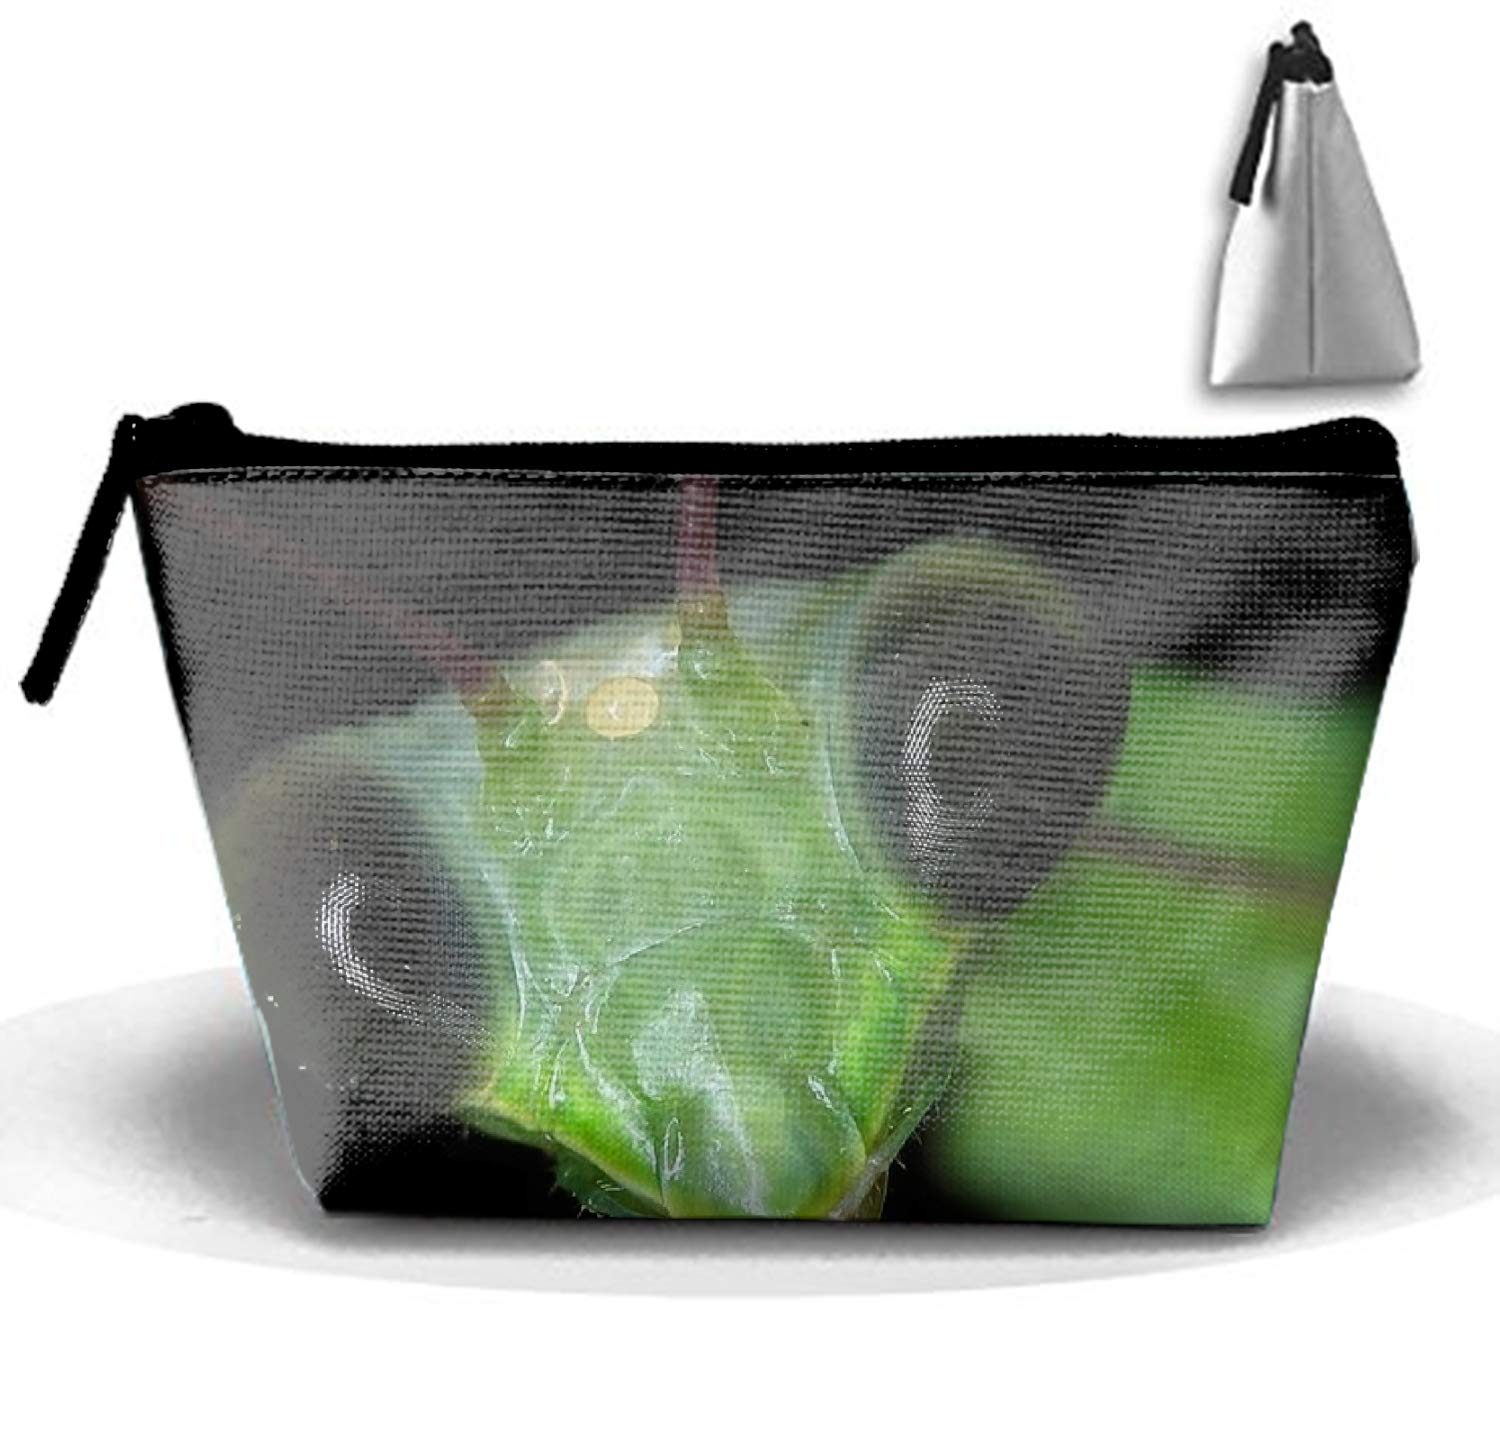 Roomy Cosmetic Bag Animal Praying Mantis Toiletry Pouch Makeup with Zipper for Travel